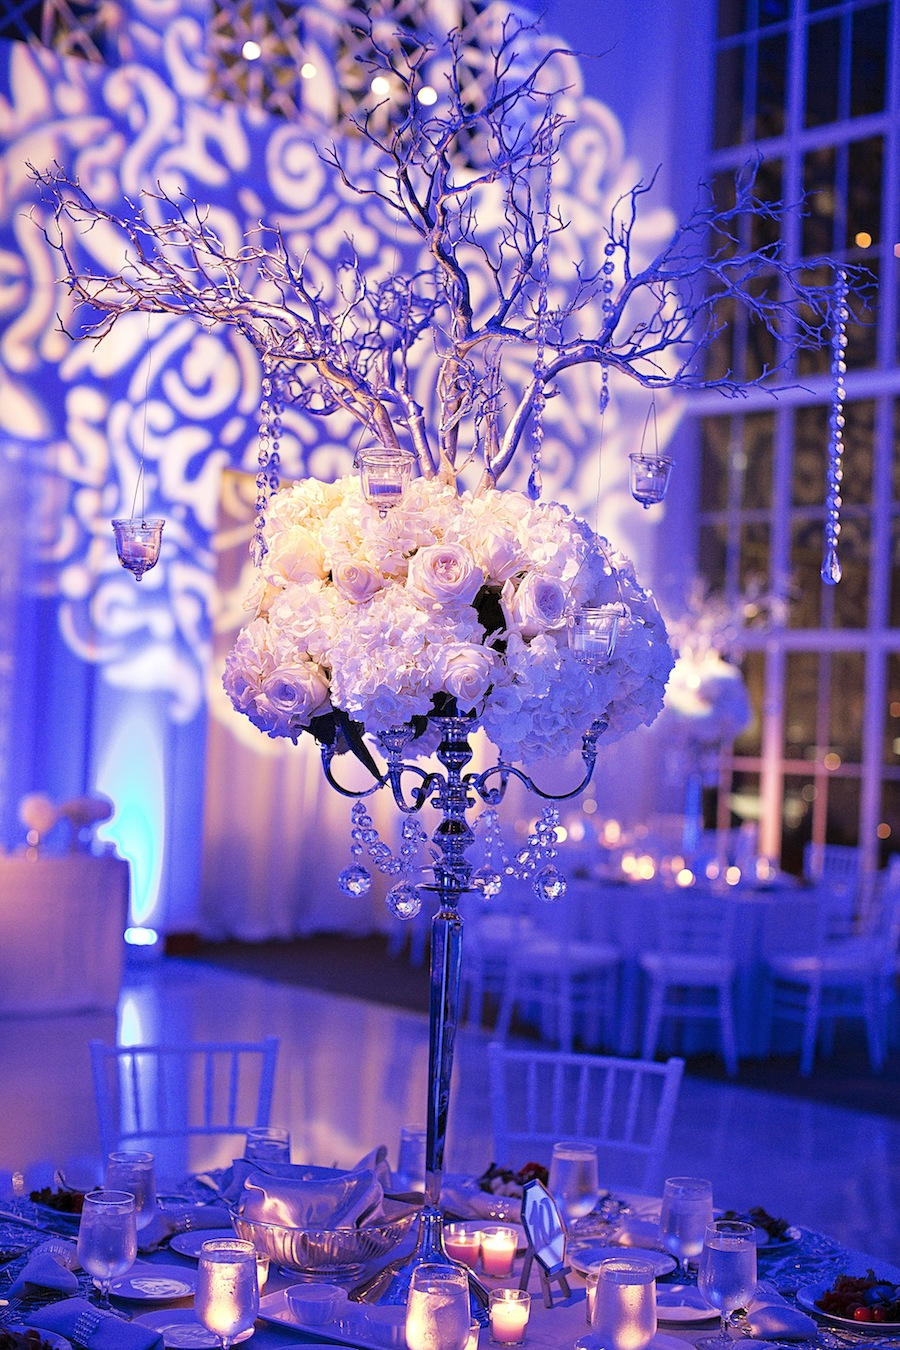 Modern Wedding Reception at The Vault | Tall White Centerpieces by Apple Blossoms Floral Design | Downtown Tampa Wedding